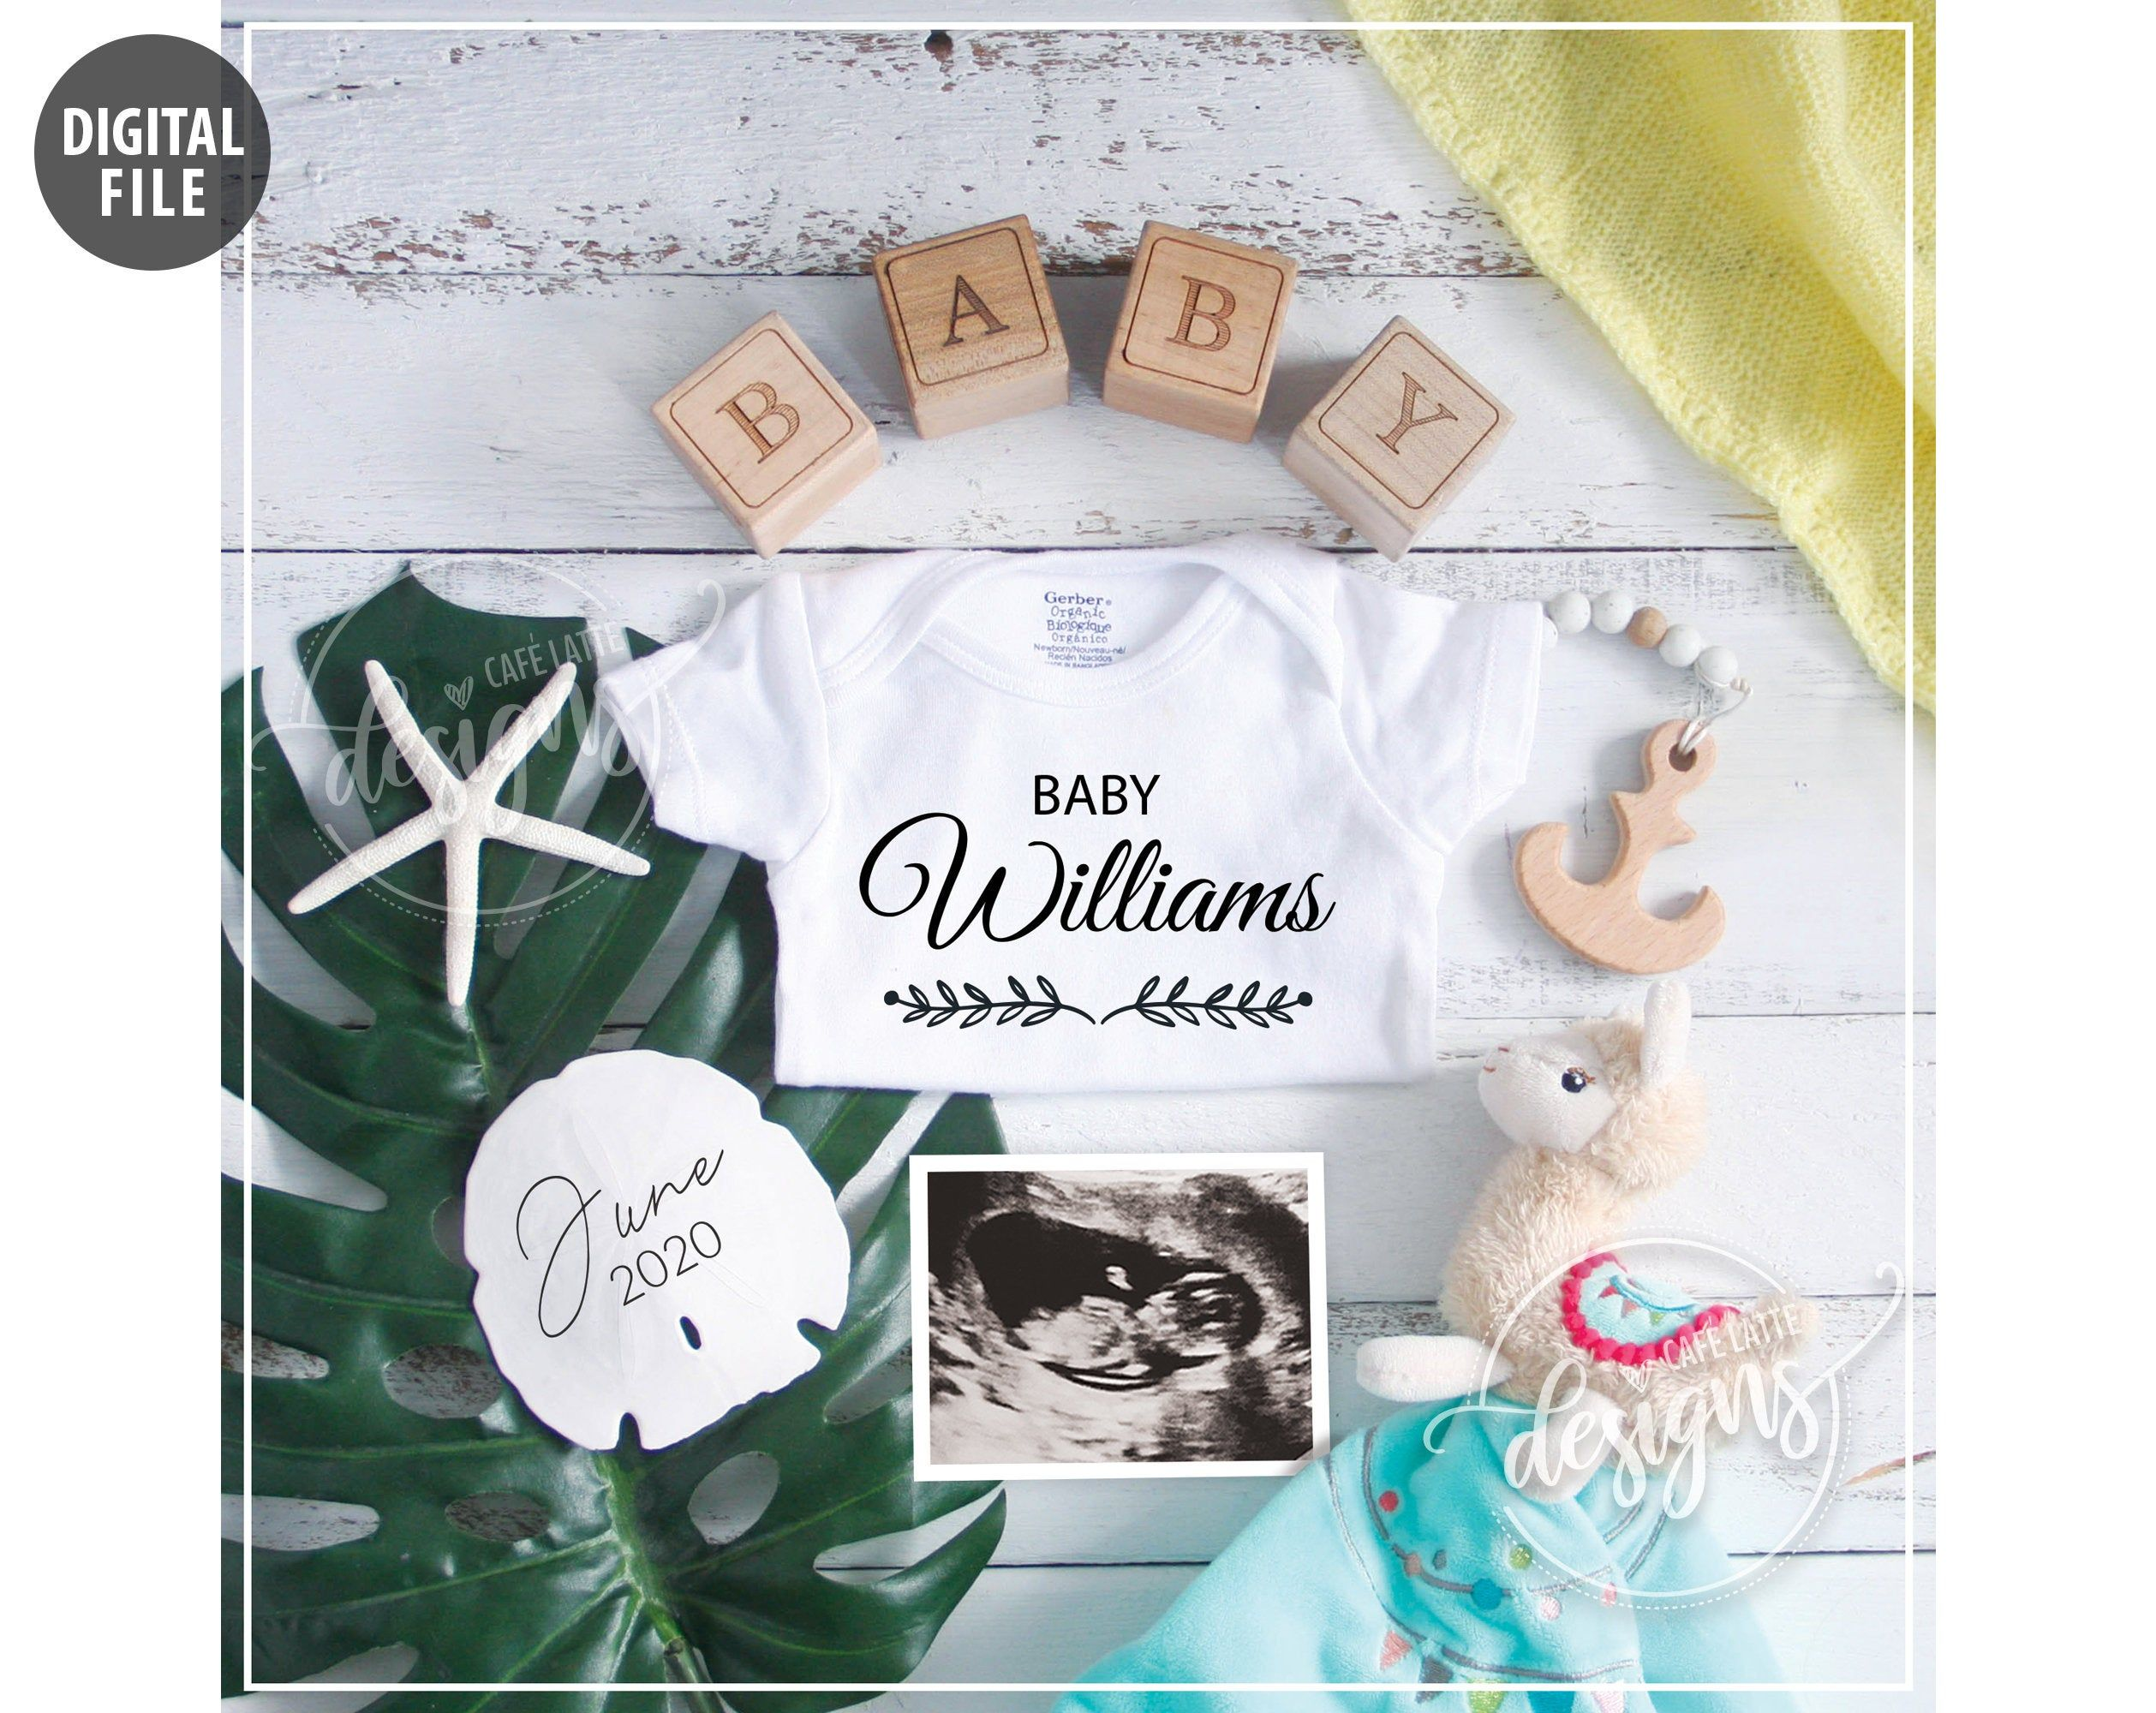 Pregnancy Announcement Pregnancy Reveal Idea Guess What? Bib for New Baby Suprise New Grandparents Baby Bib Baby Bib Announcement